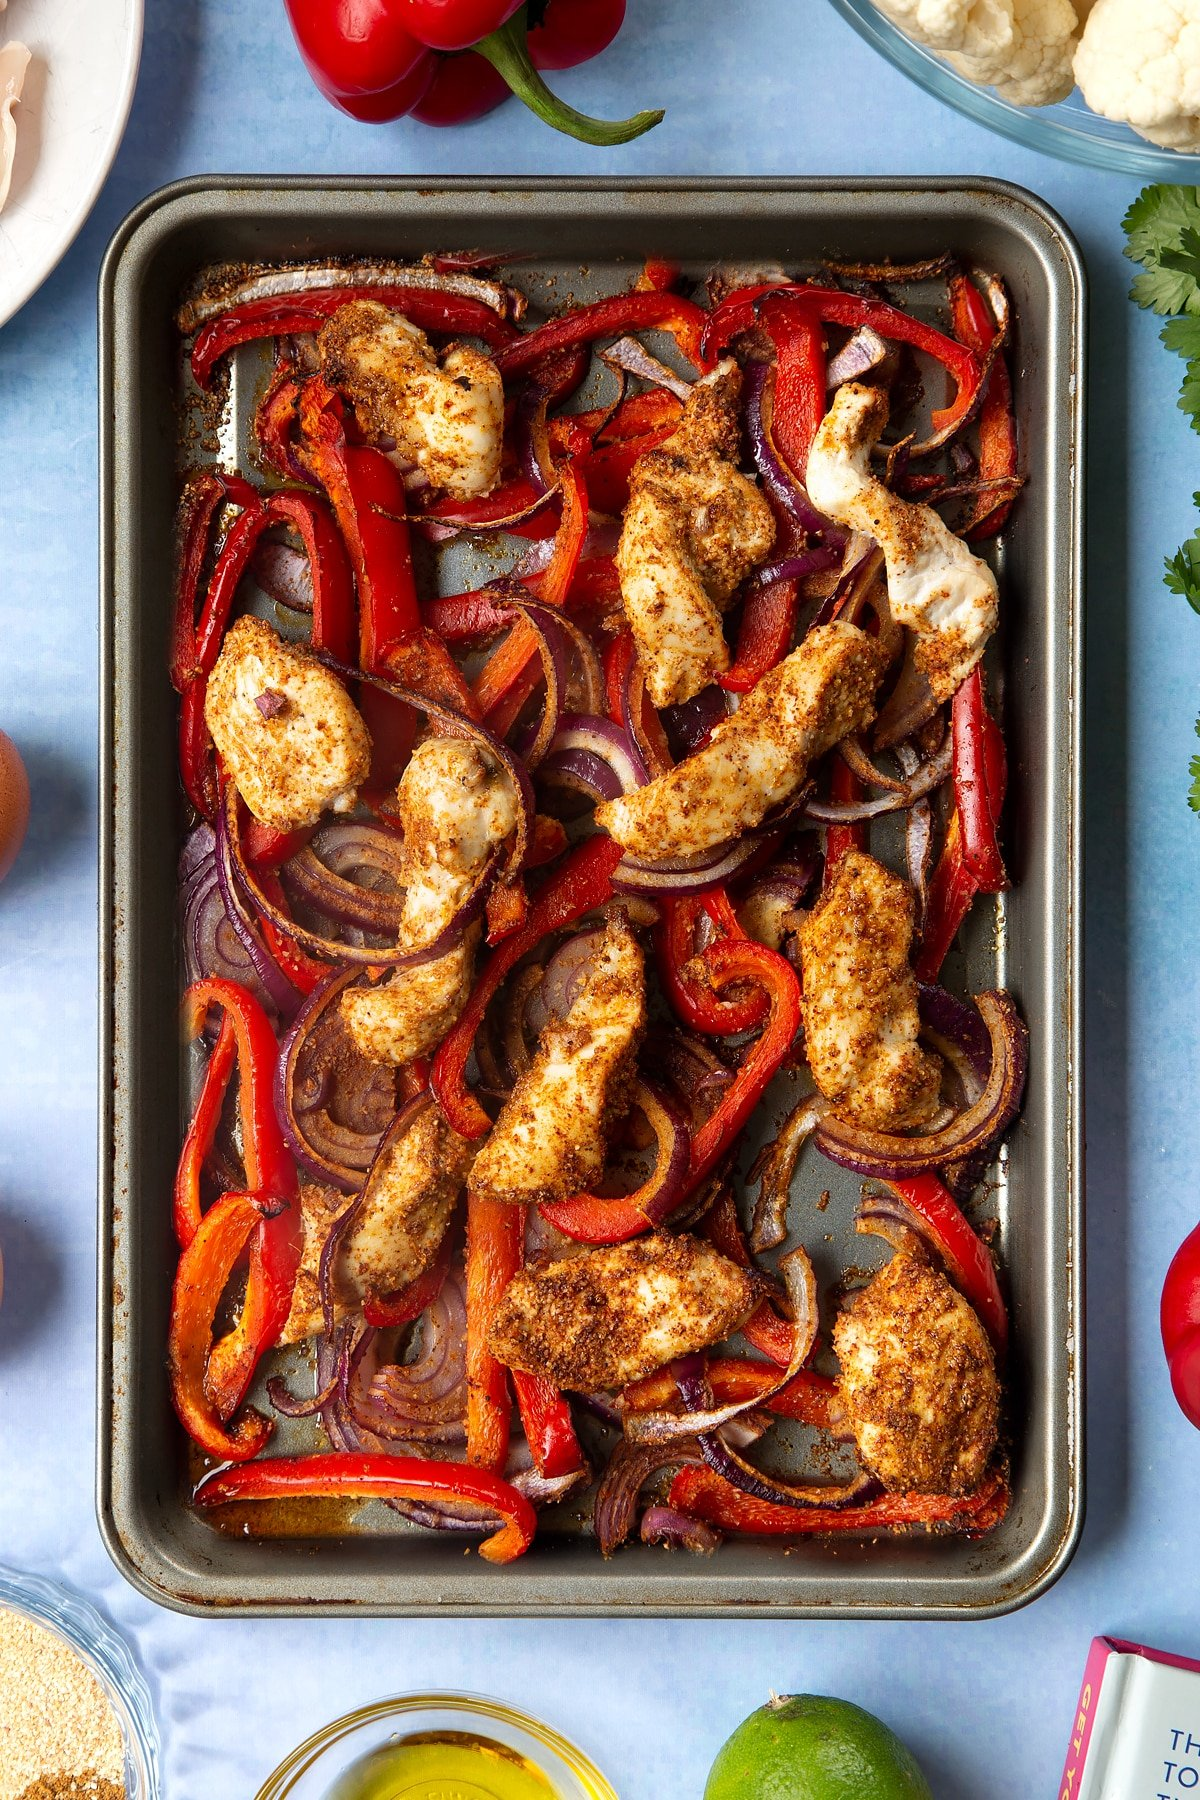 Sliced chicken breast, sliced red peppers, sliced red onion and spices mixed together on an oiled tray and roasted. The tray is surrounded by ingredients for cauliflower tacos.